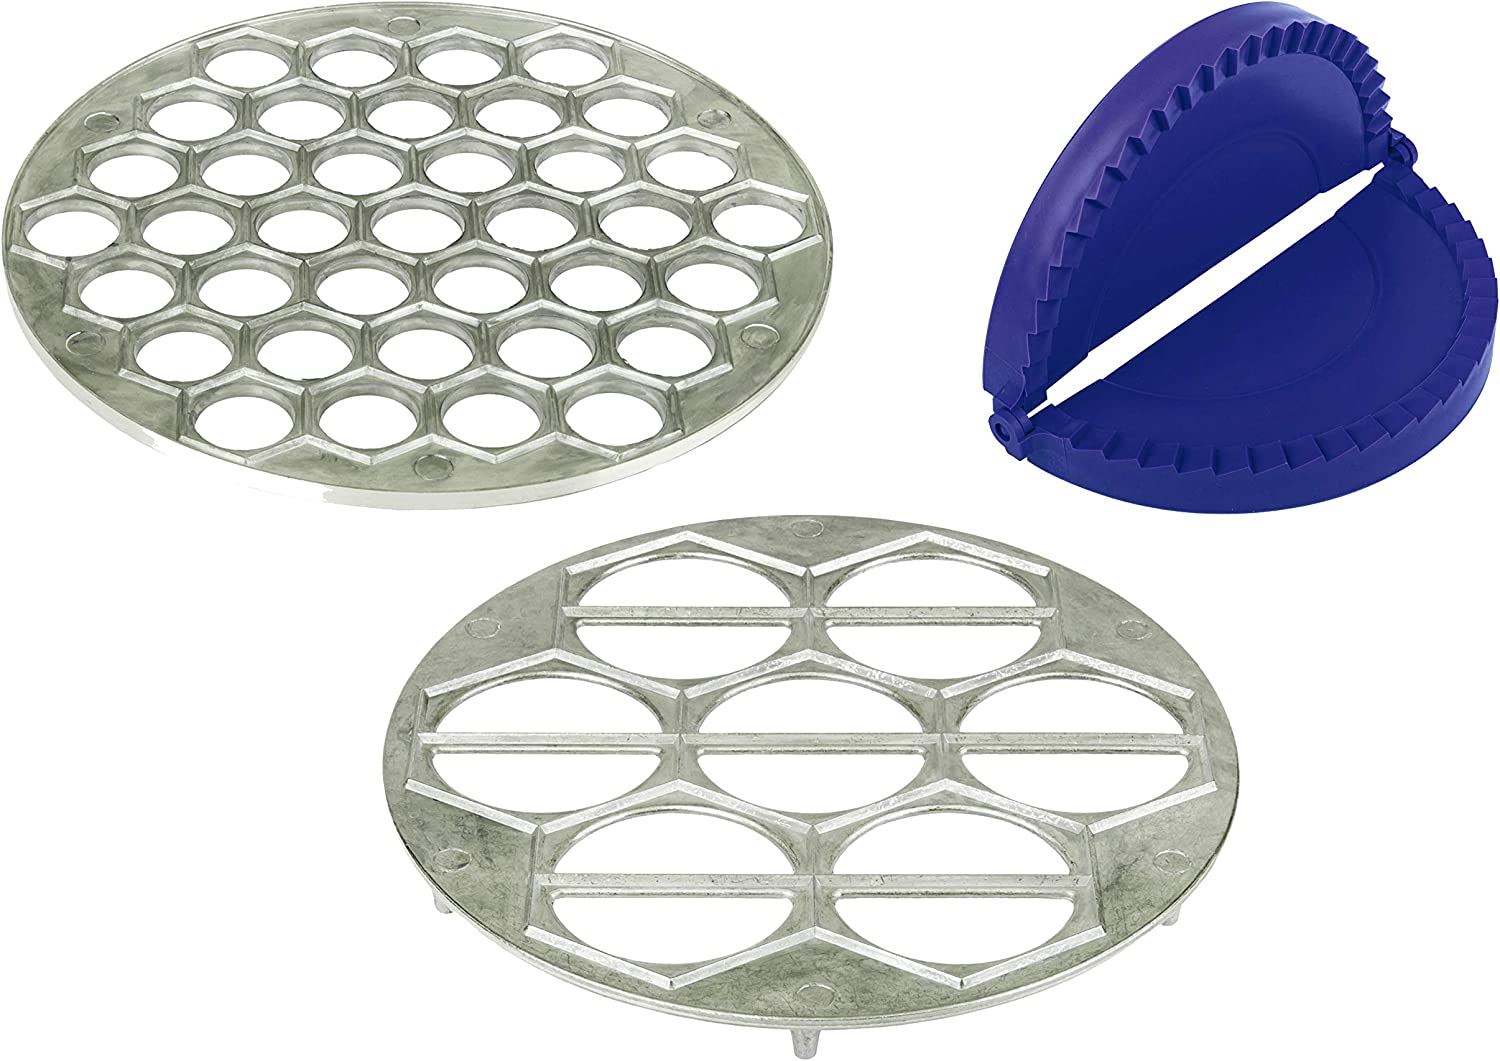 Mold for Pelmeni and Ravioli - Pack of 3 - Chebureki Plastic Maker Mold - Kitchen Large Vareniki Maker